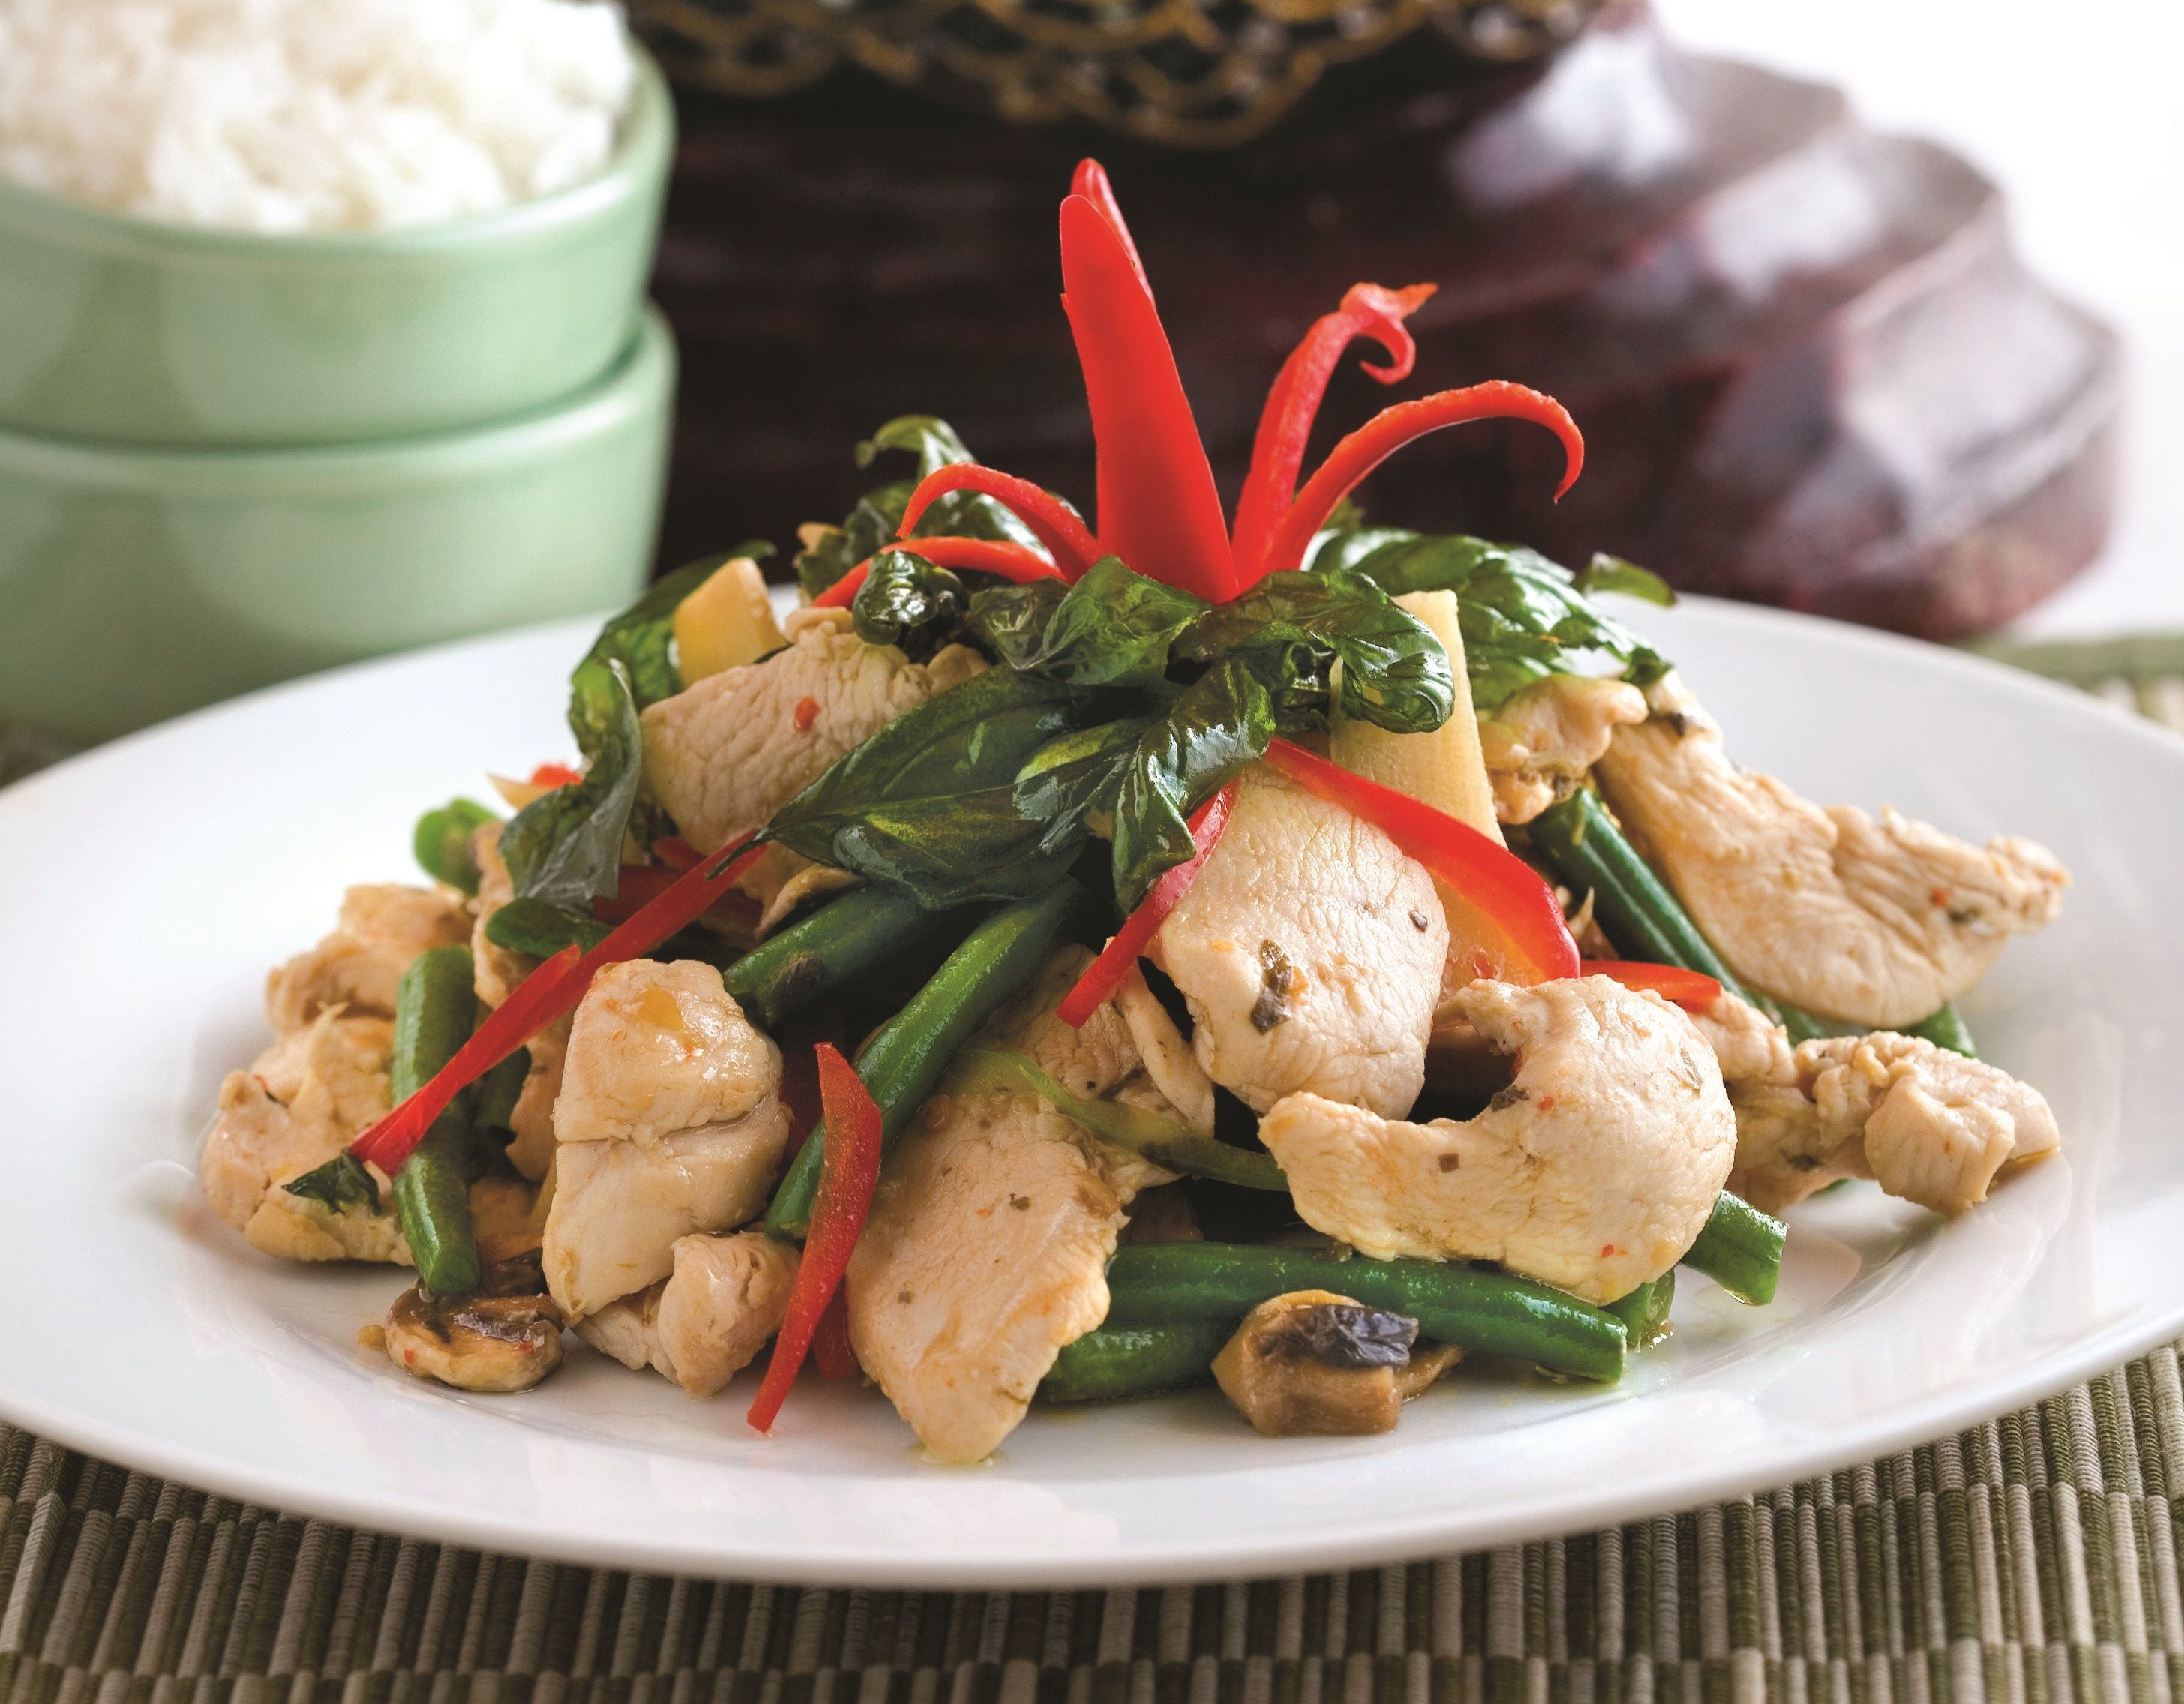 Warm up with thai food this winter with spicy thai recipes warming warm up with thai food this winter with spicy thai recipes warming thai ingredients healthy thai dishes and the best thai meal ideas for winter forumfinder Image collections